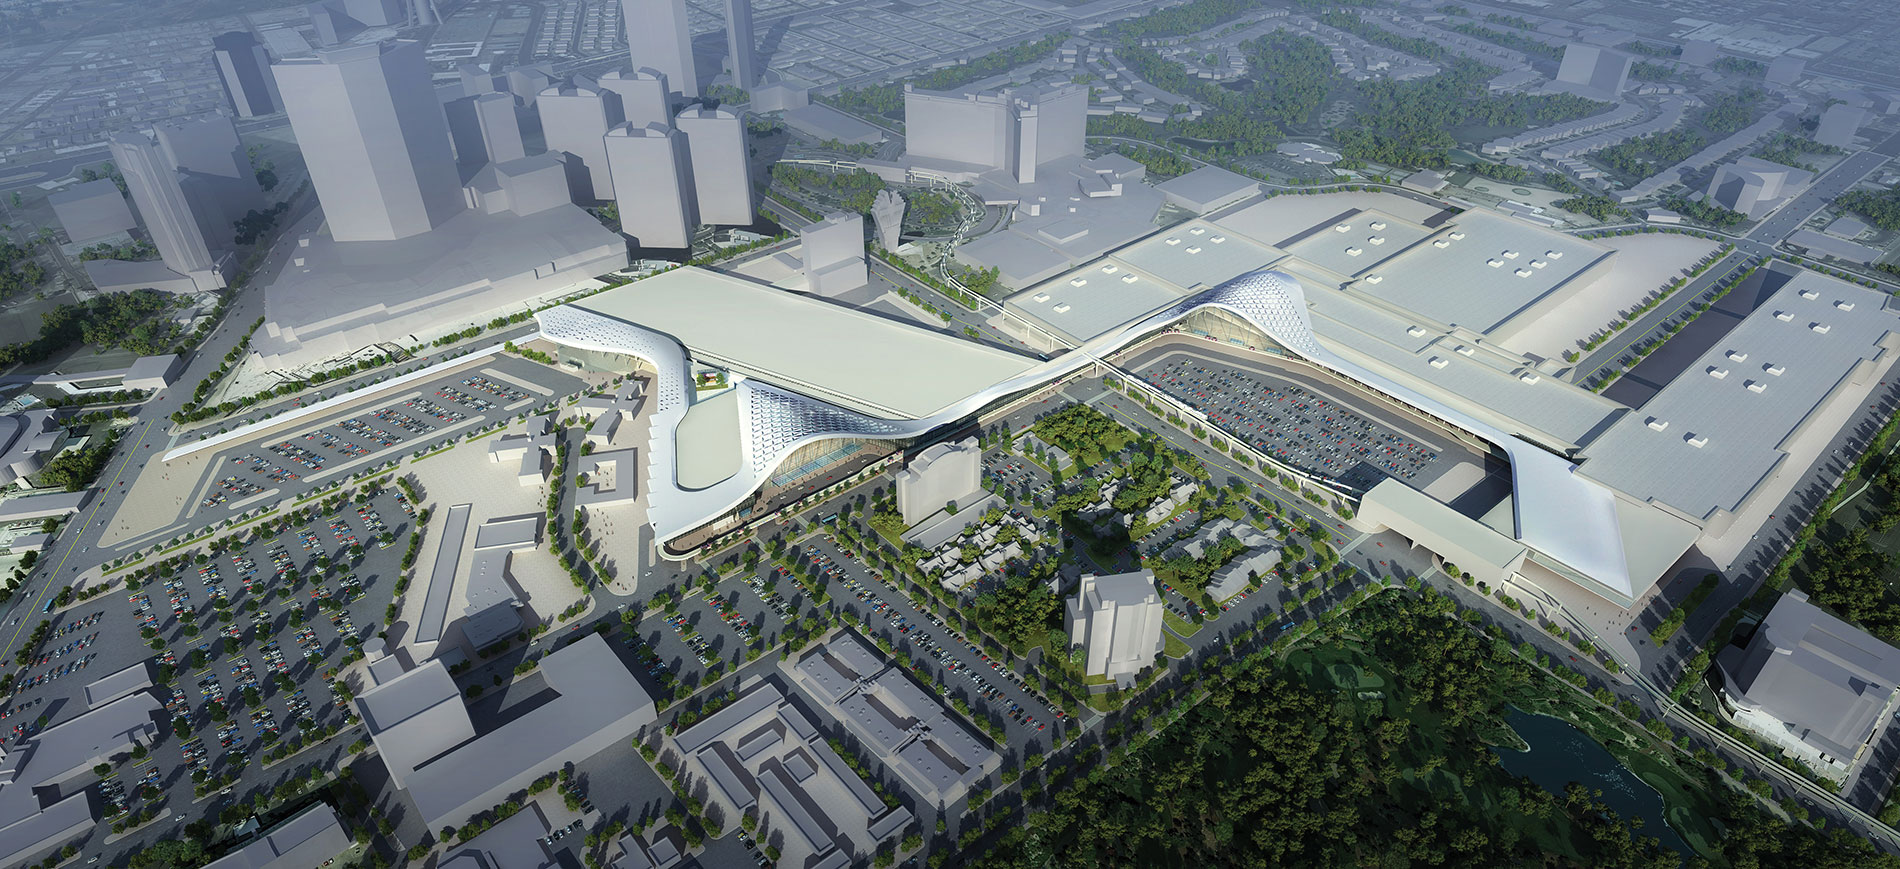 A bird's-eye view rendering of Las Vegas Convention Center expansion and renovation. Image Credit: TVSDesign